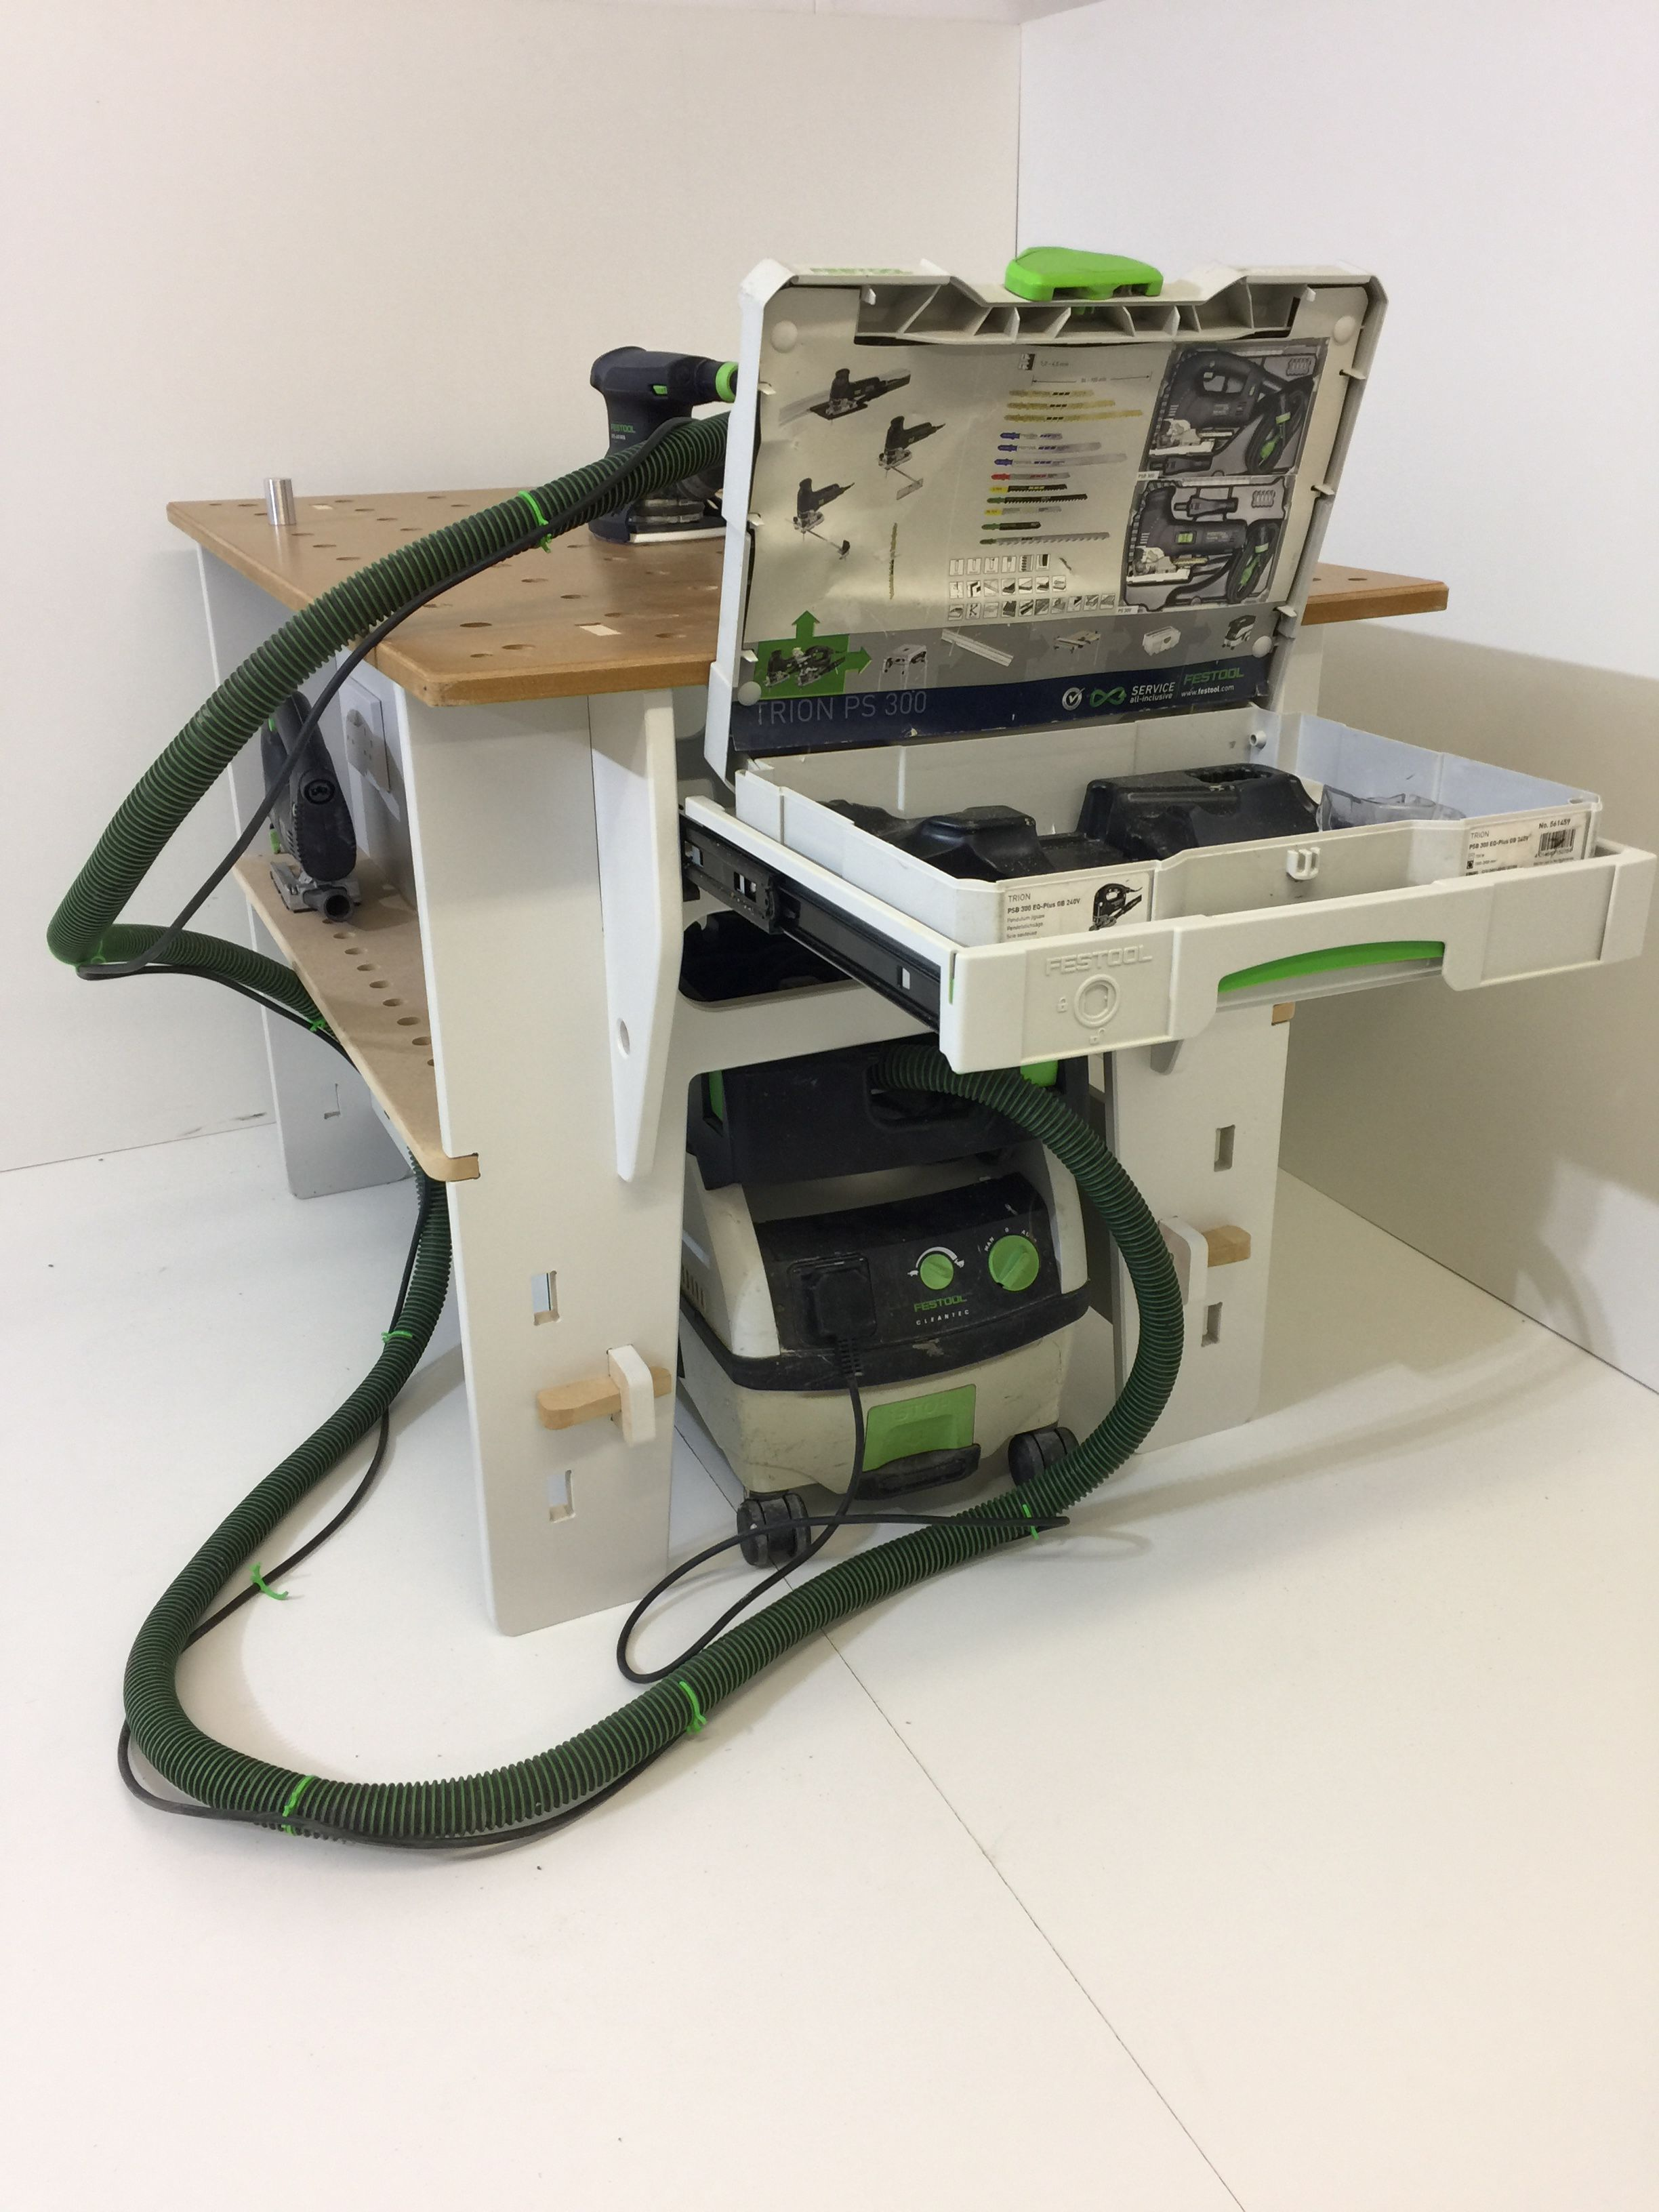 Pin By Eric Hammarstrom On Festool Jigs And Tool Enhancements Festool Woodworking Shop Projects Carpentry Workshop